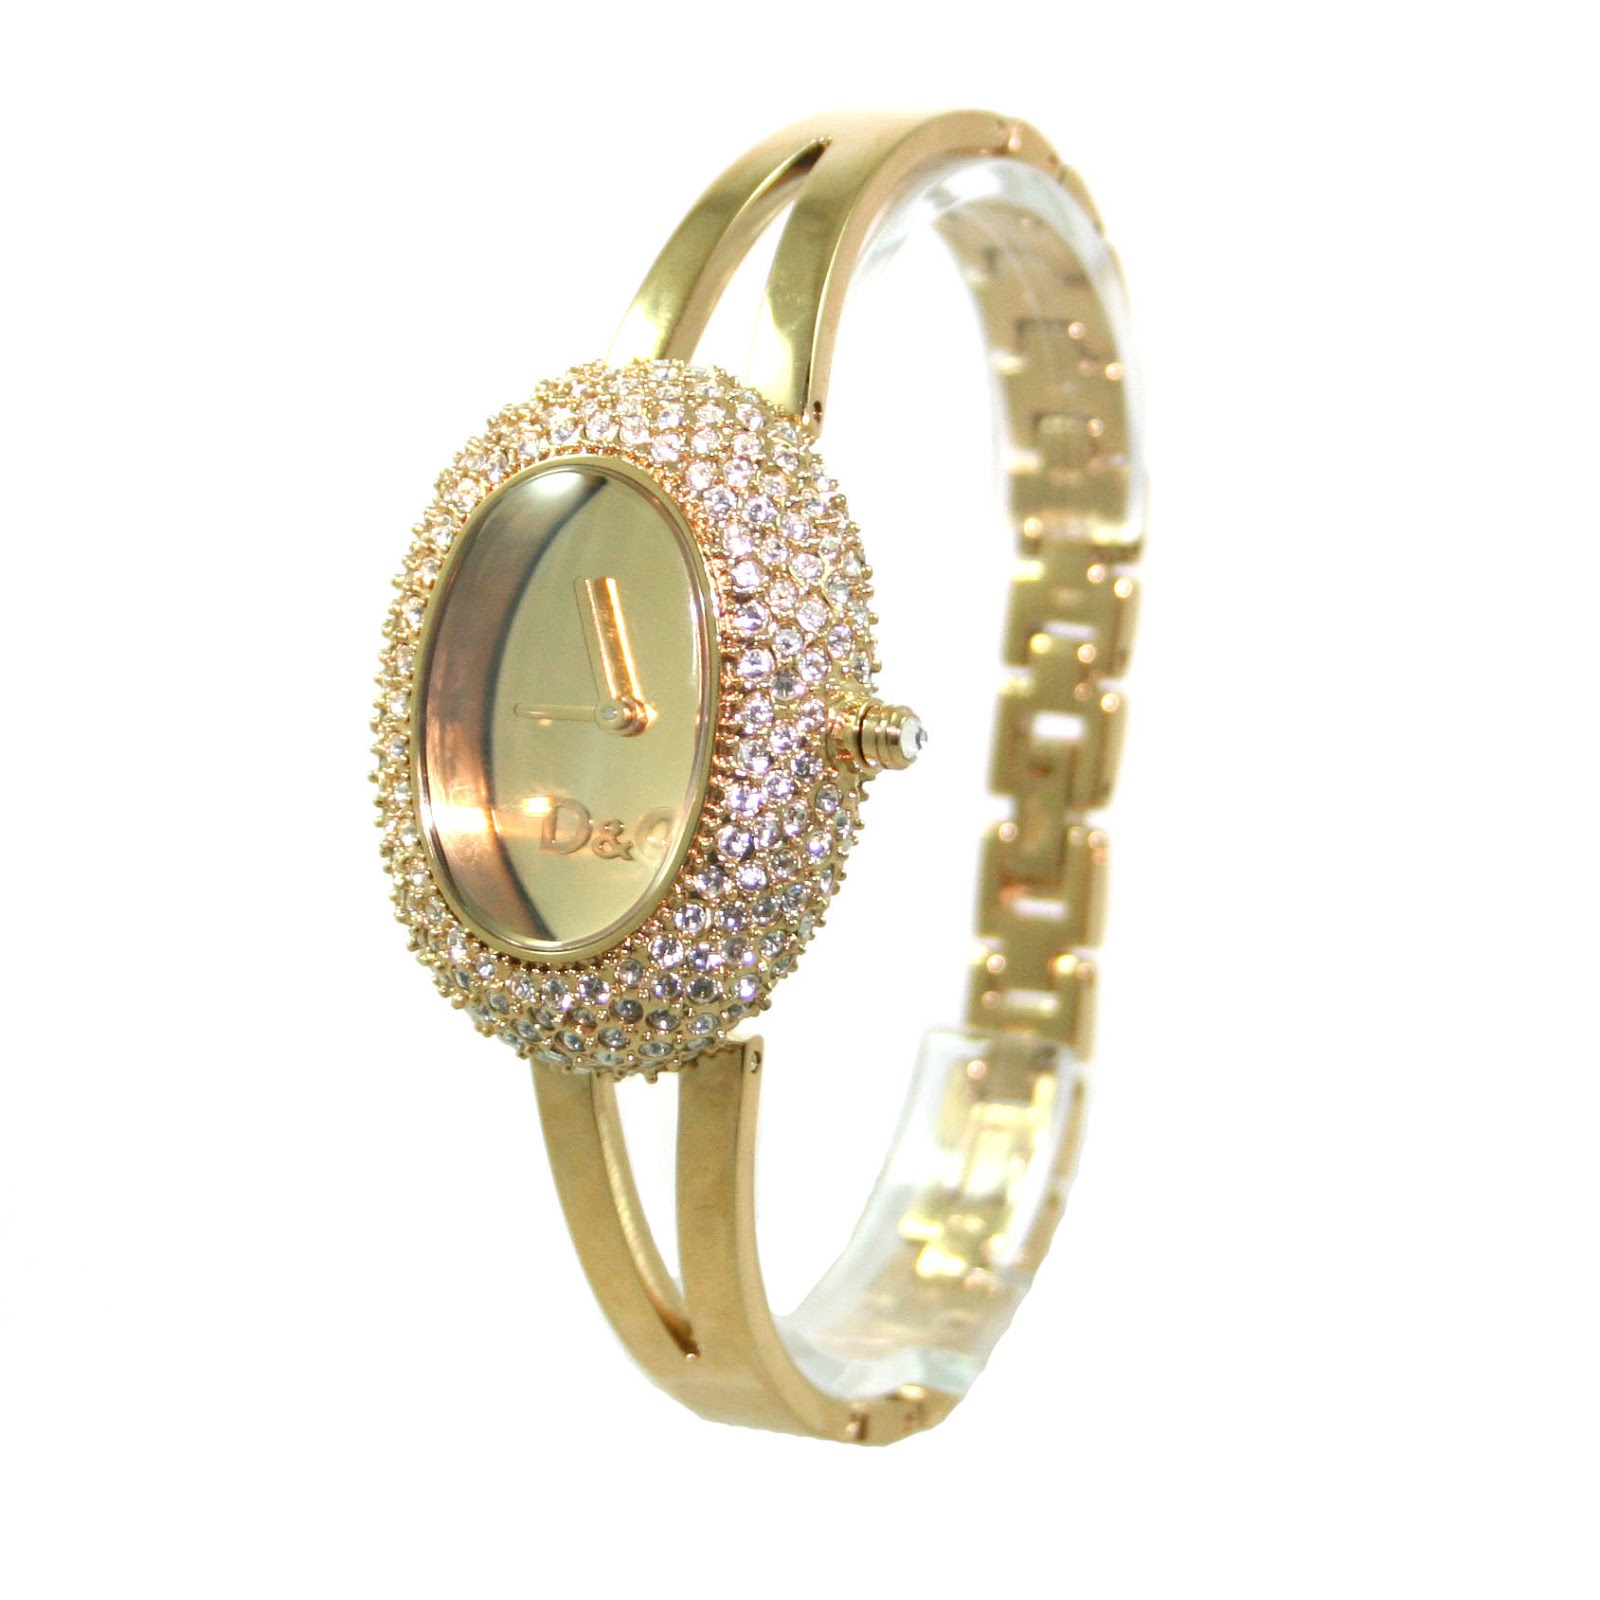 dejaun for jewelers at swiss description authorized jewelry luxury bridal watches pin shop